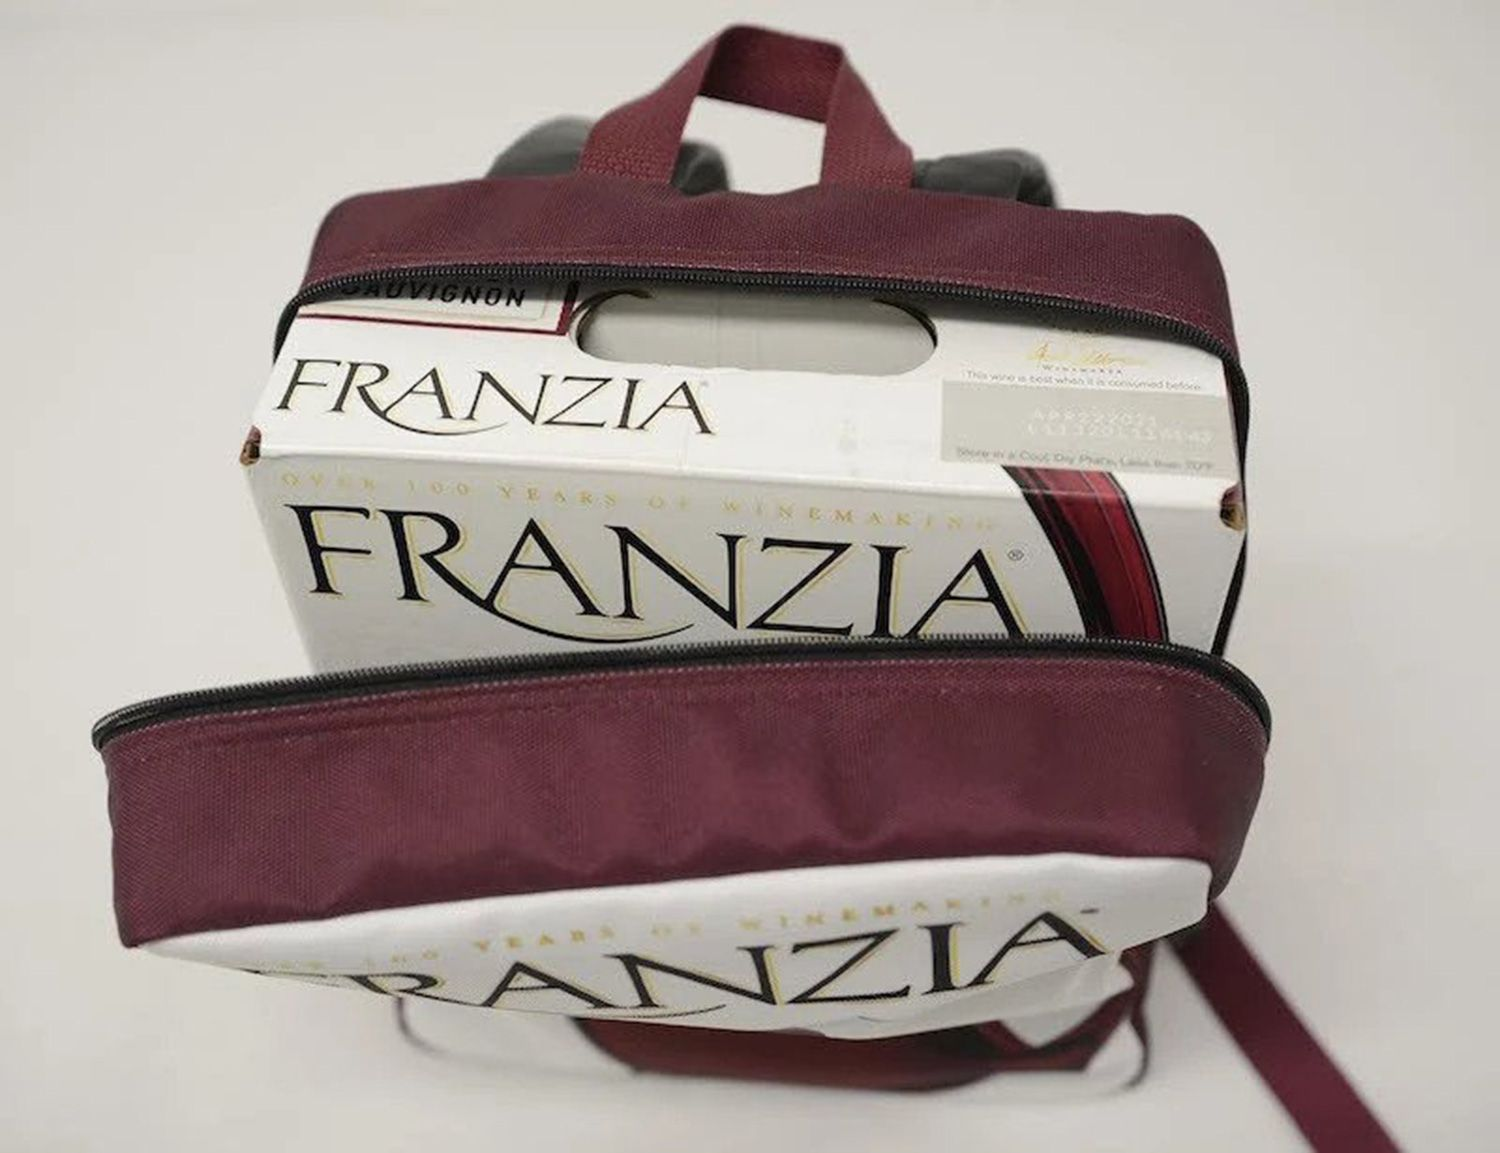 franzia wine box backpackcr franzia